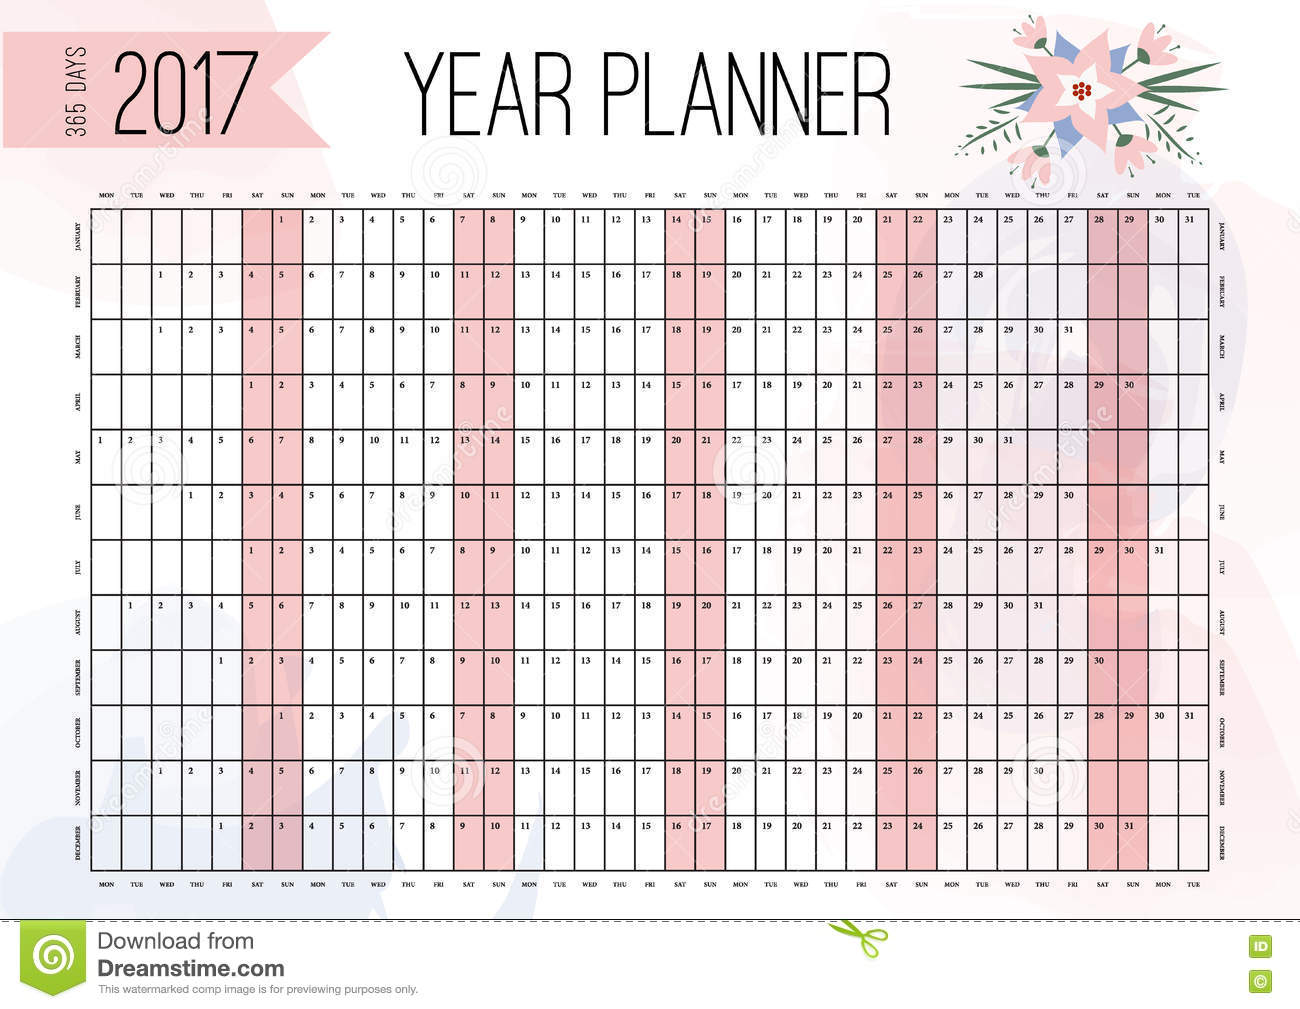 2017 wall planner cartoon vector 81315221 for Dreams by design planner